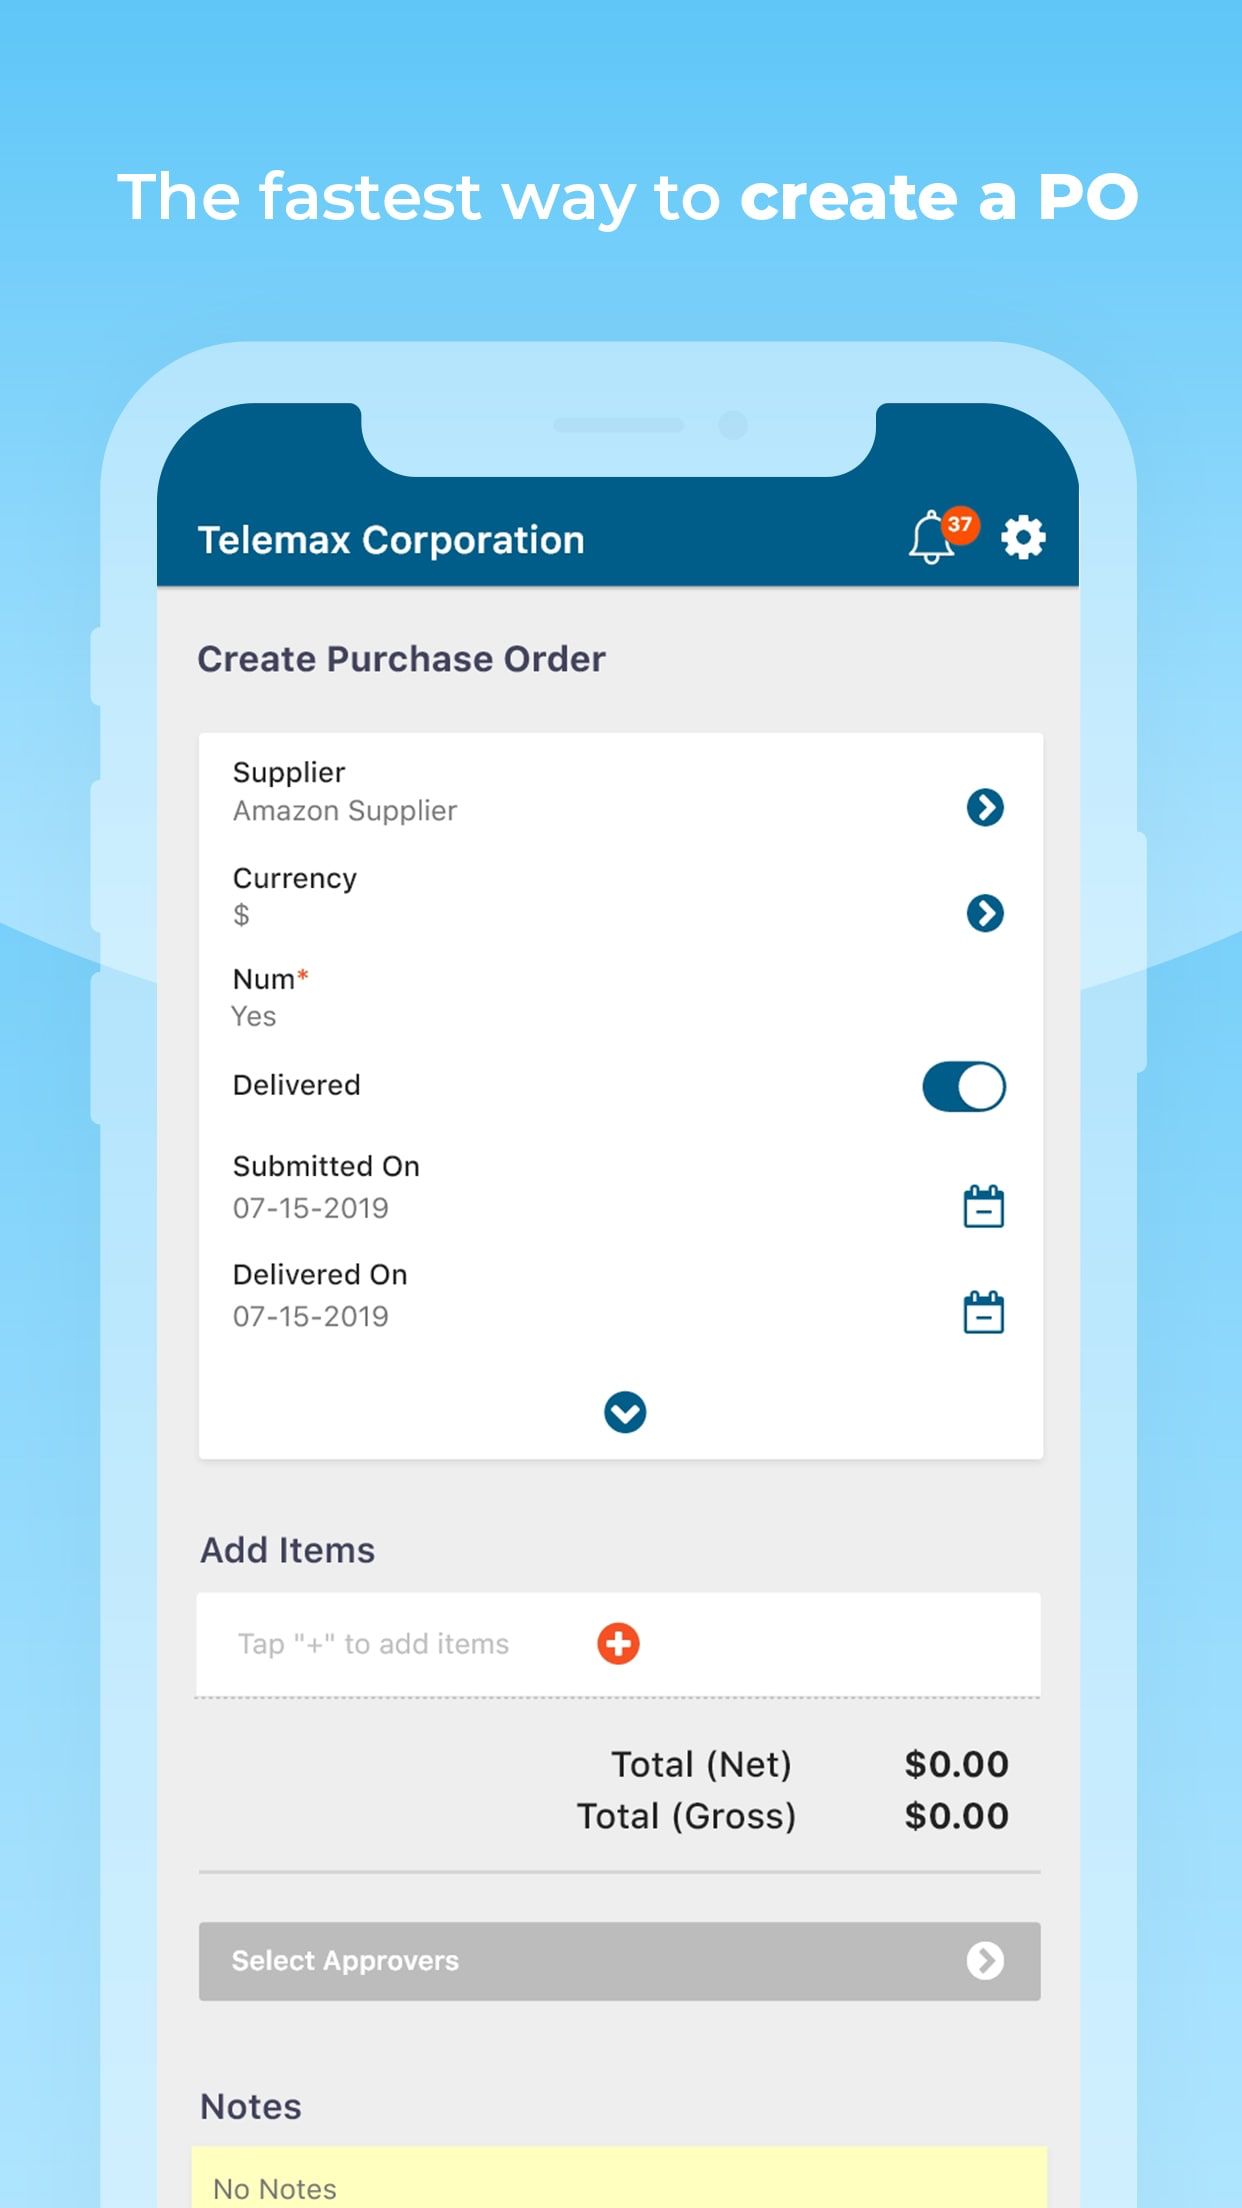 Easily create purchase requests on the go - from any device.